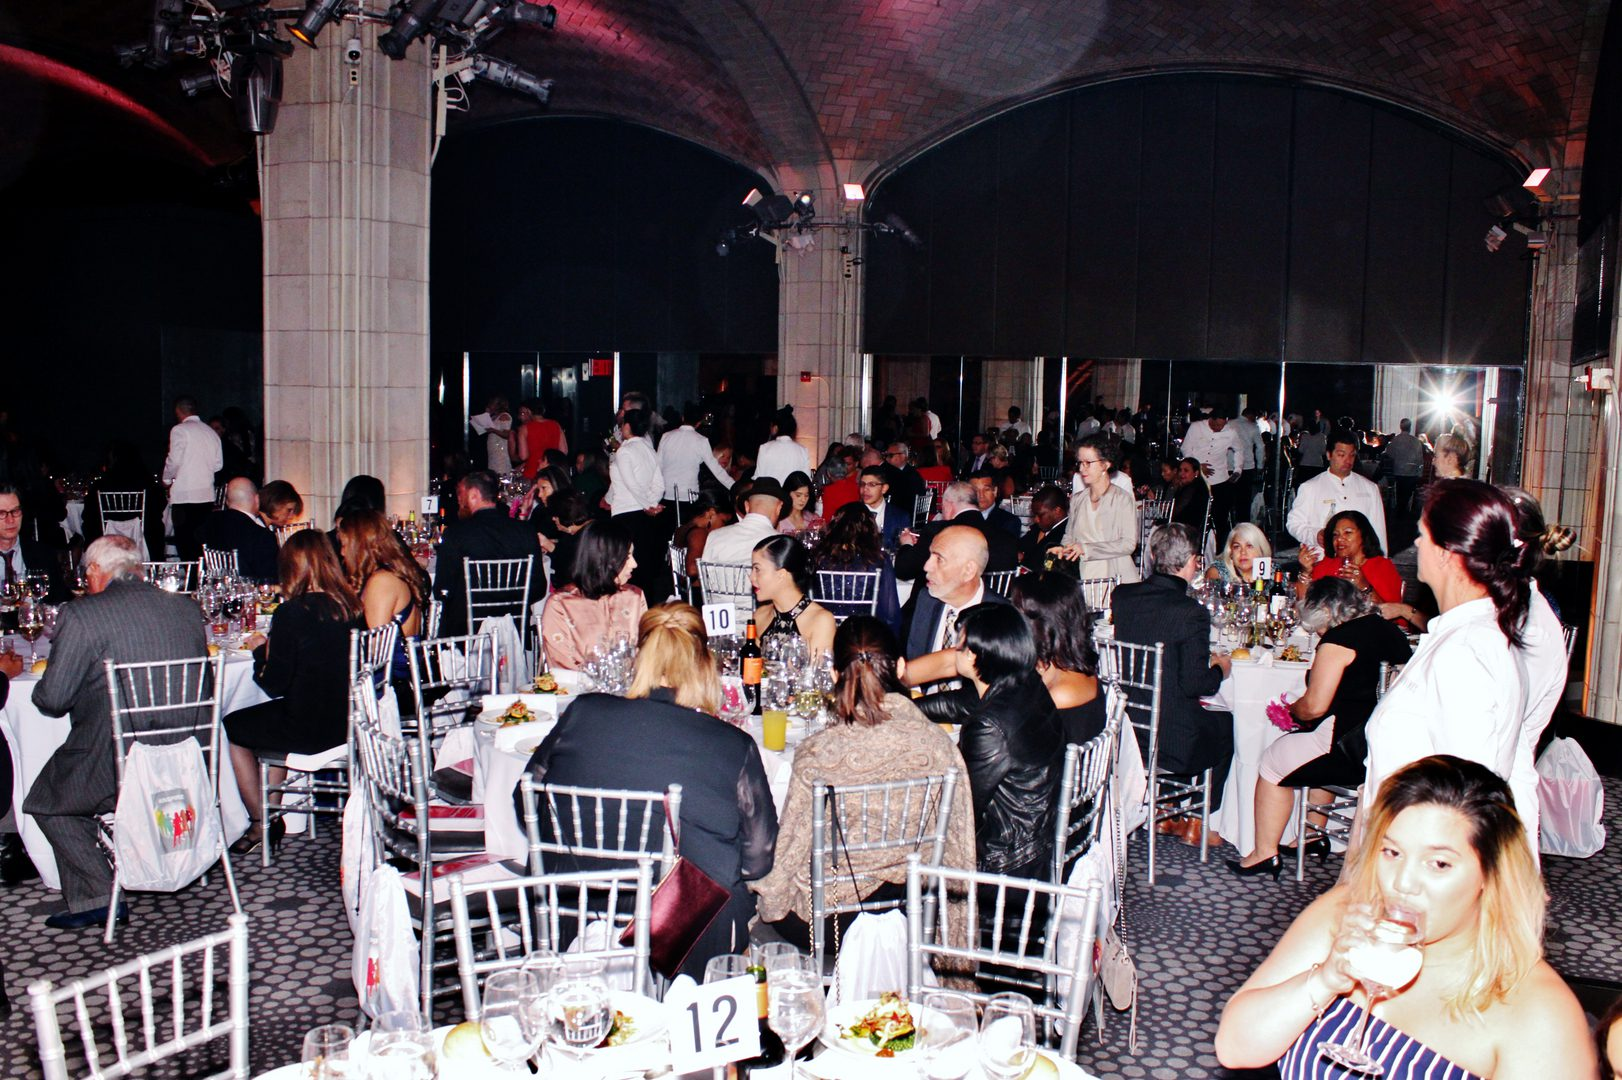 A crowd eating at an event